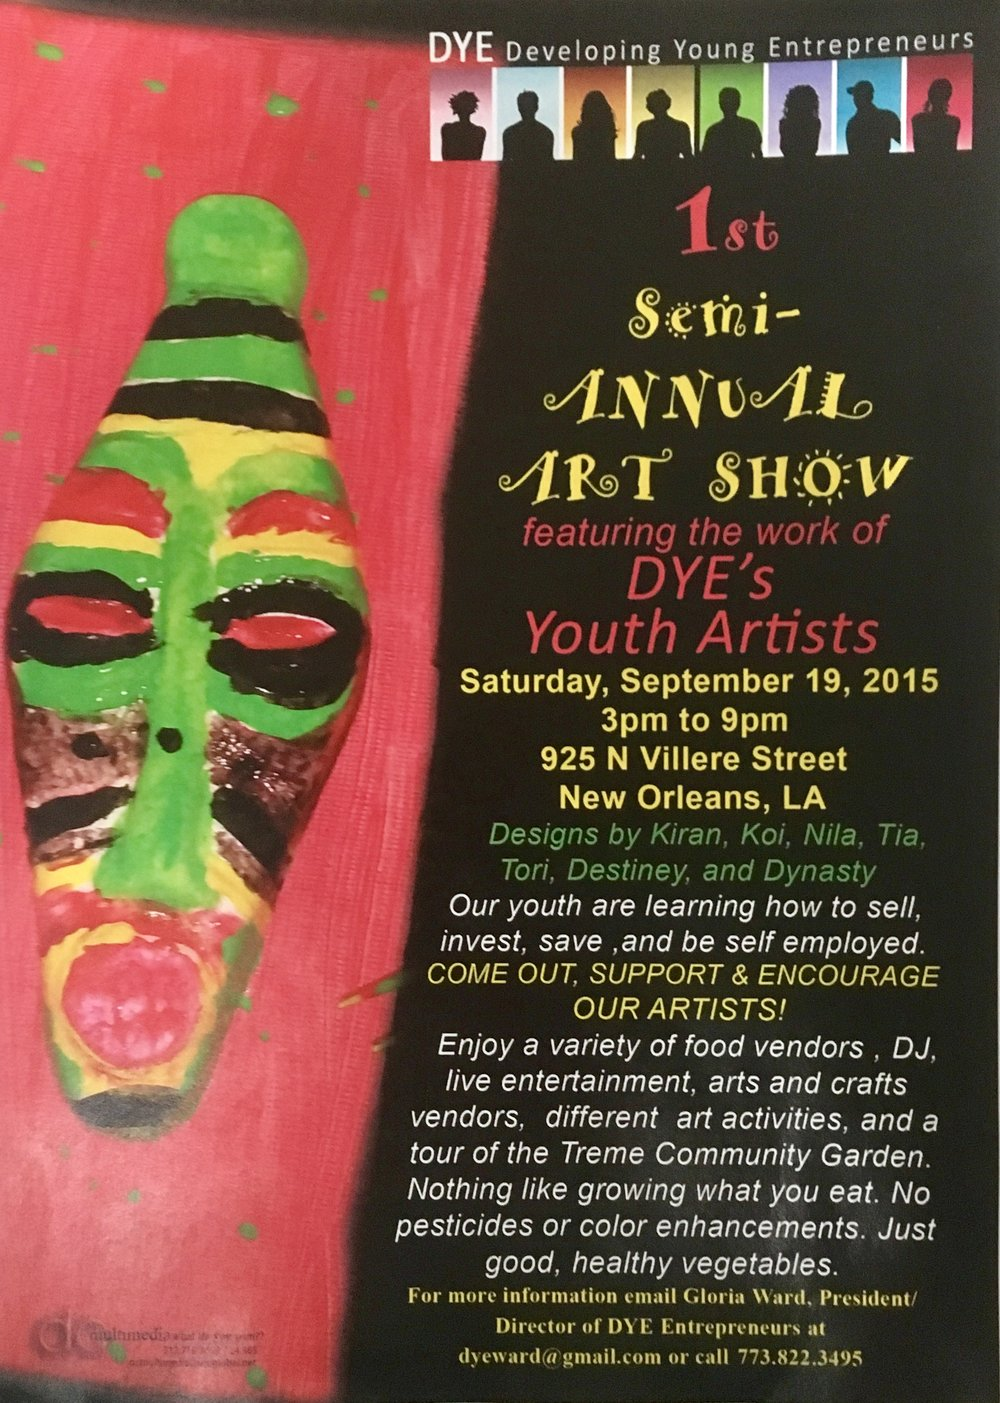 DYE ART SHOW FLYER (PAST EVENTS).jpg